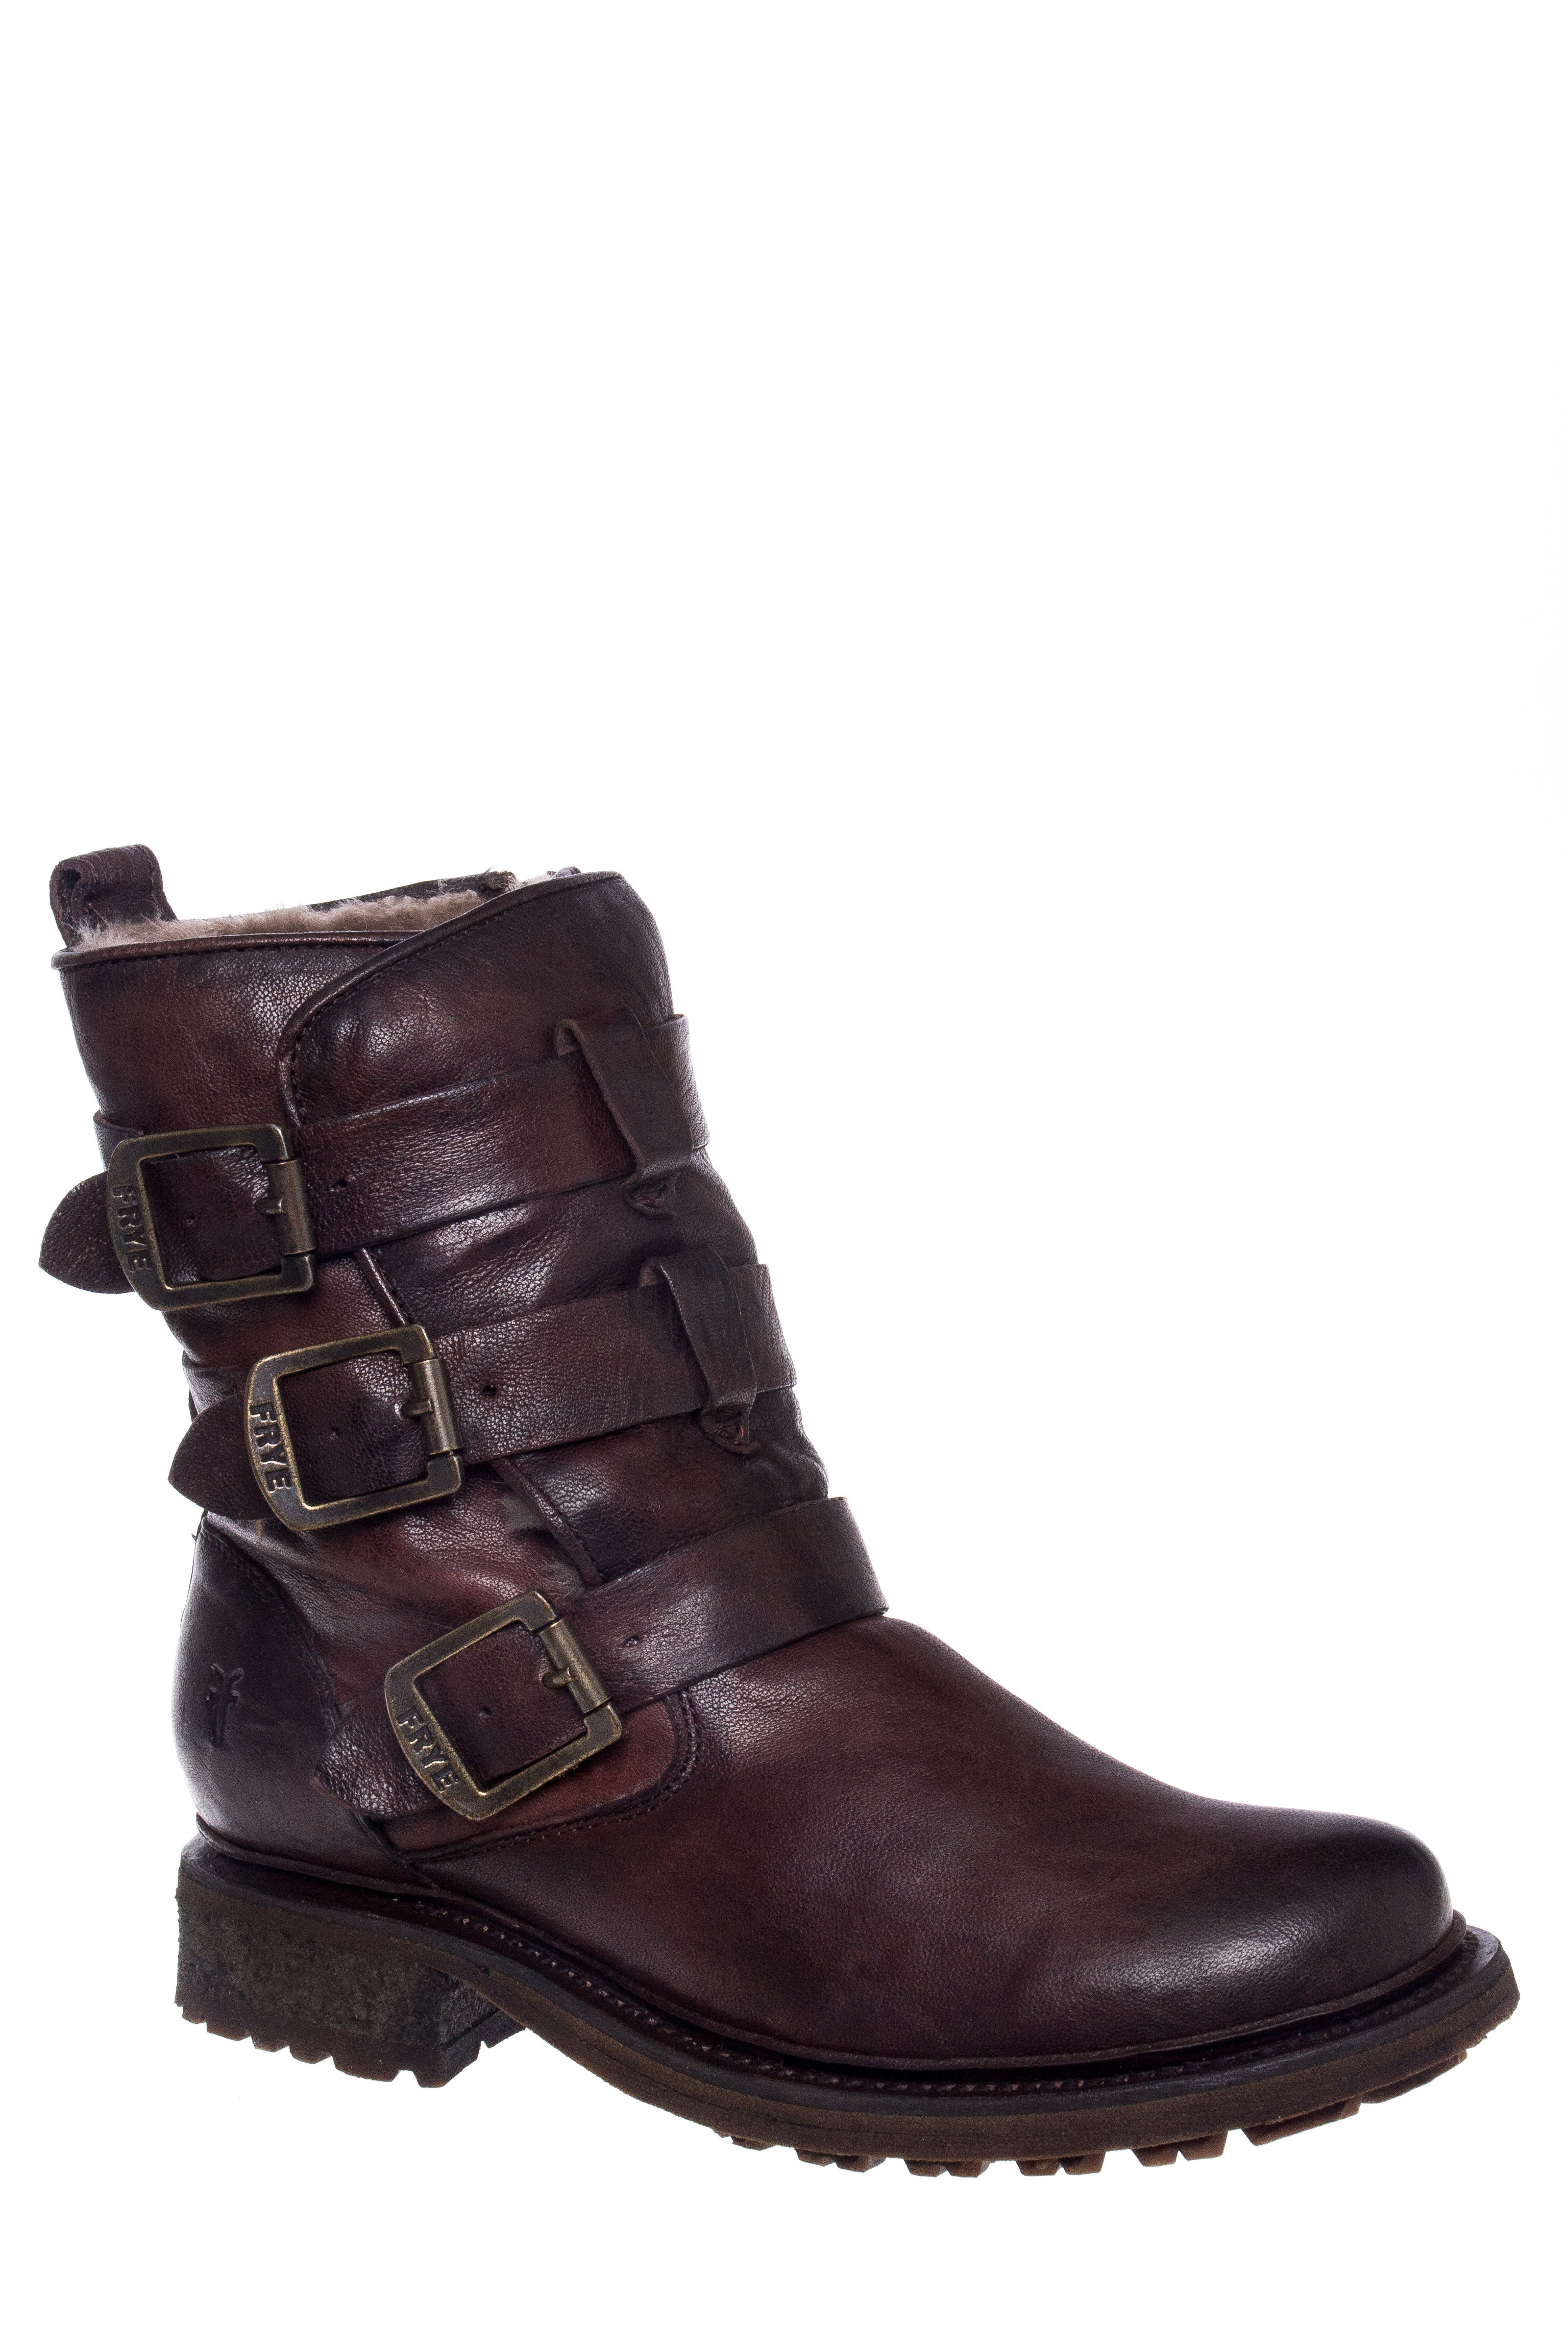 Frye Valerie Shearling Strappy Low Heel Boots - Dark Brown